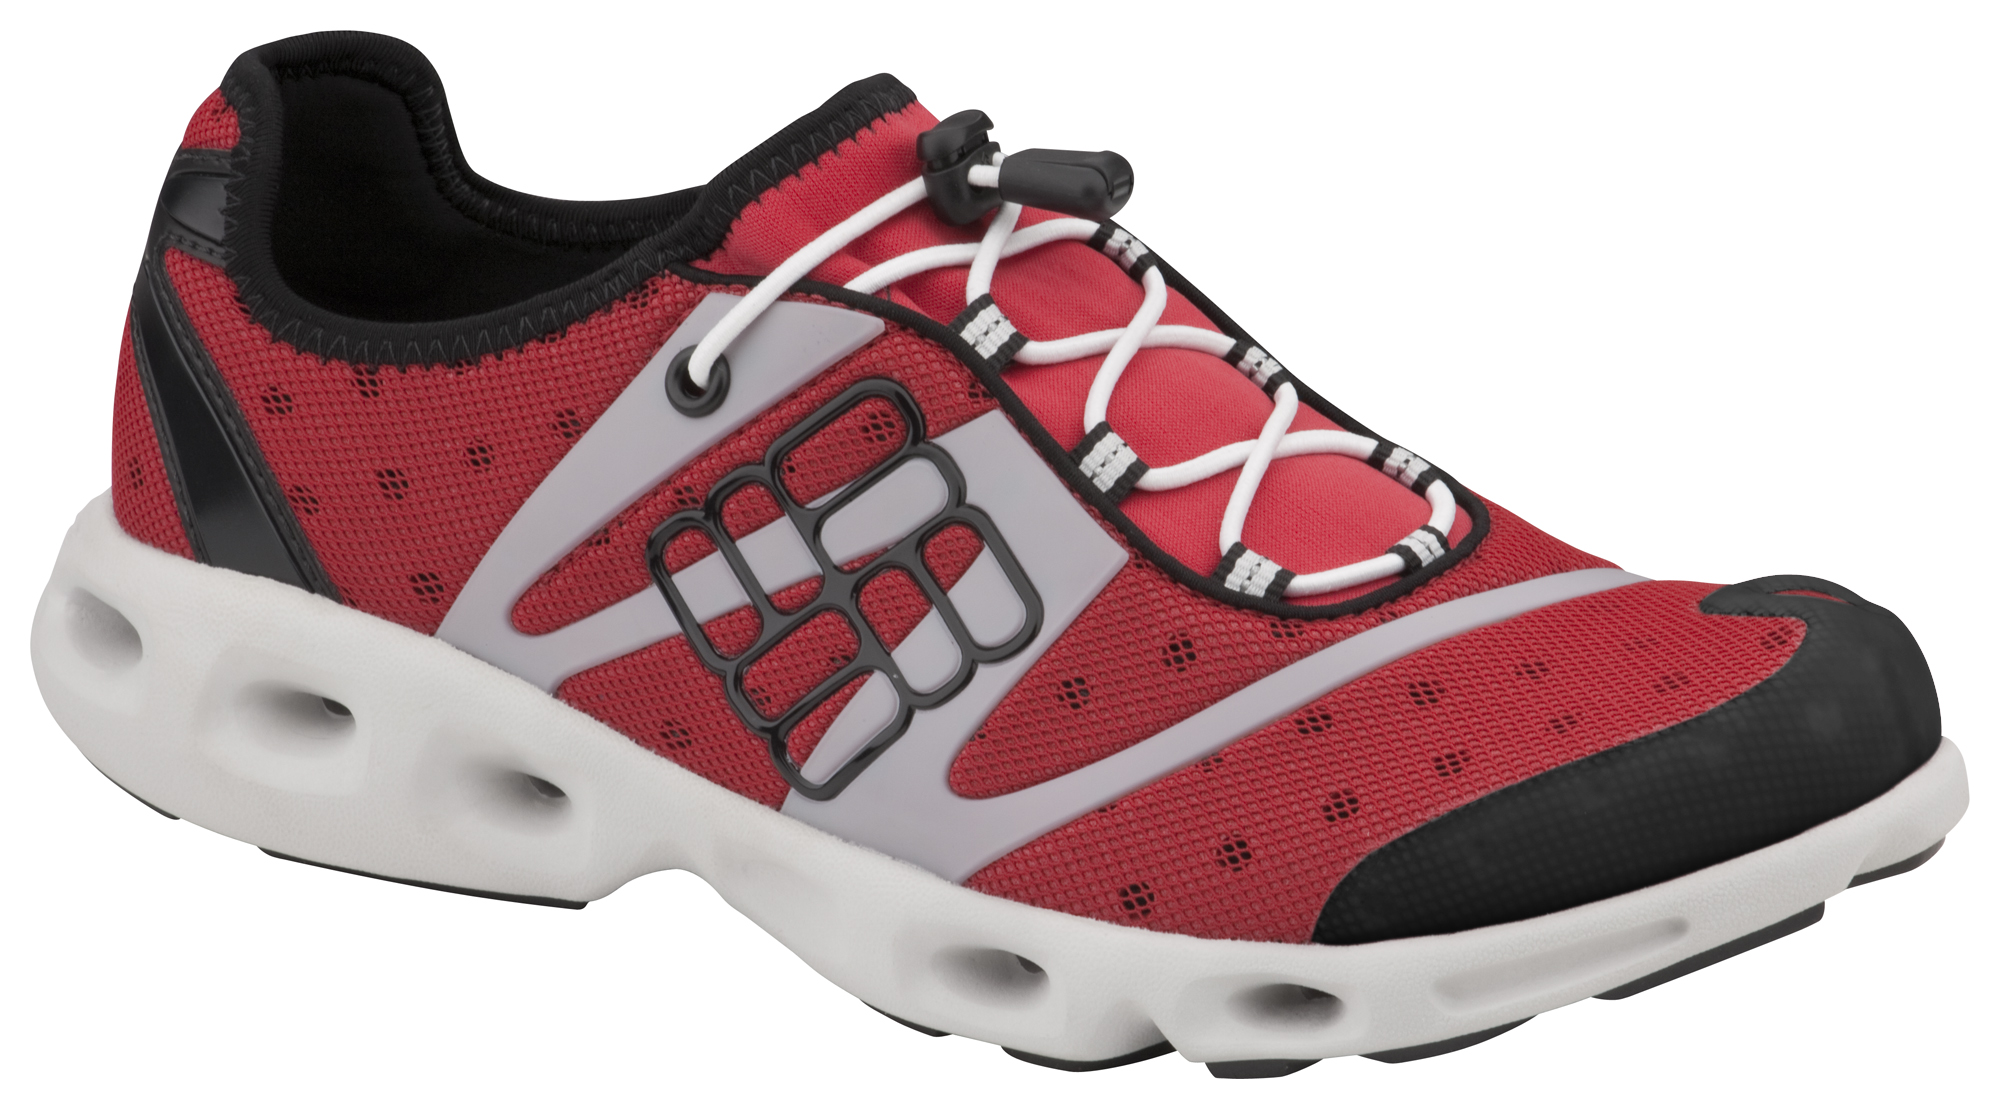 ff9b4b47eee1 Columbia Powerdrain Water Shoe - Florida Sportsman